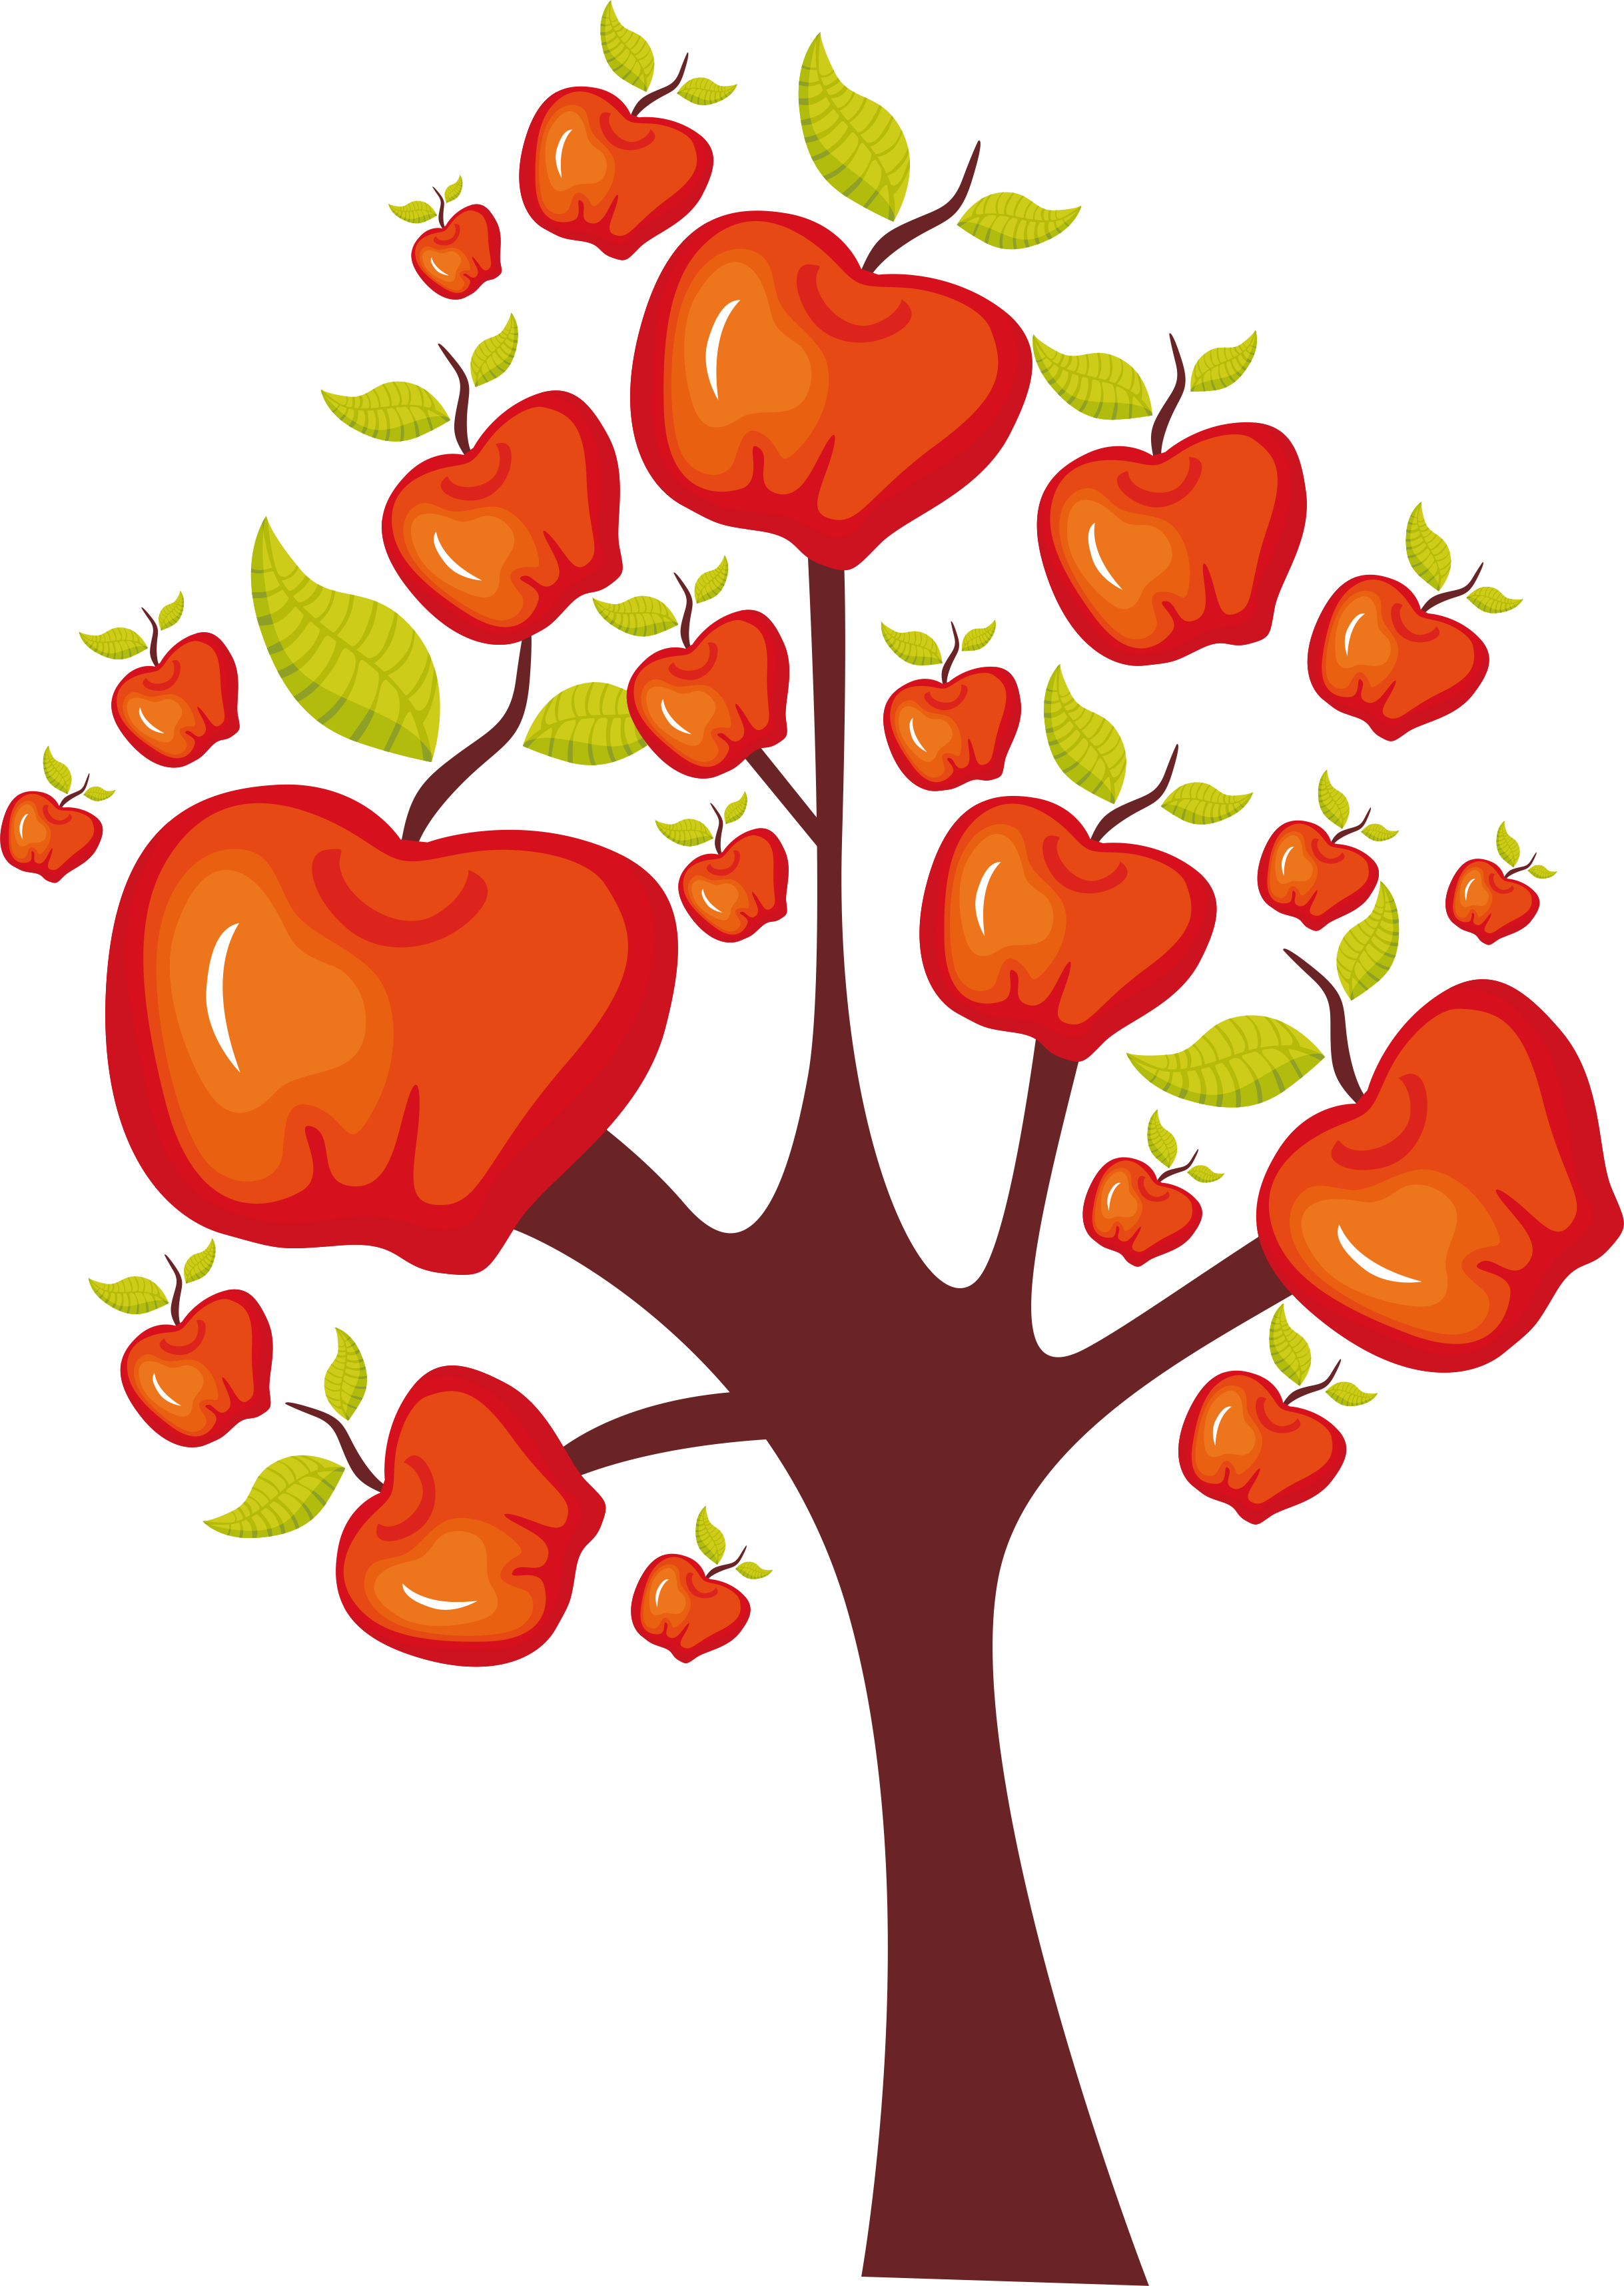 Fall apple tree clipart clip royalty free library Business intelligence Tree Clip art - Apple Tree 2438*3432 ... clip royalty free library